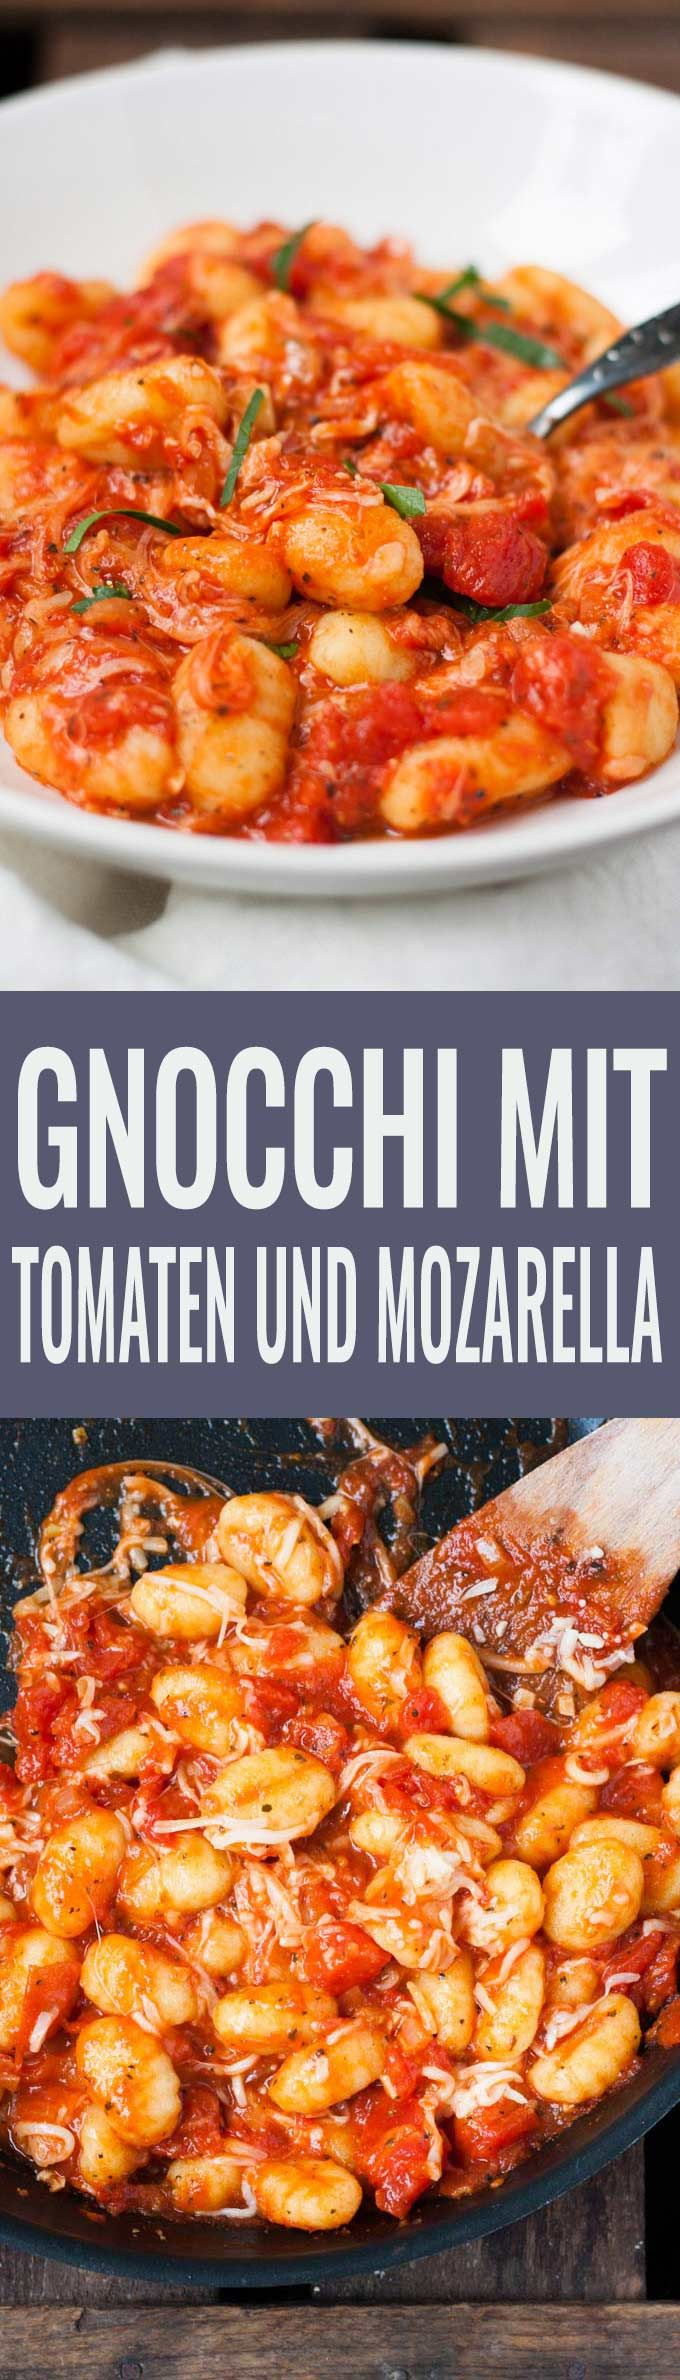 Photo of 15-minute gnocchi with tomato sauce and mozzarella cooking carousel